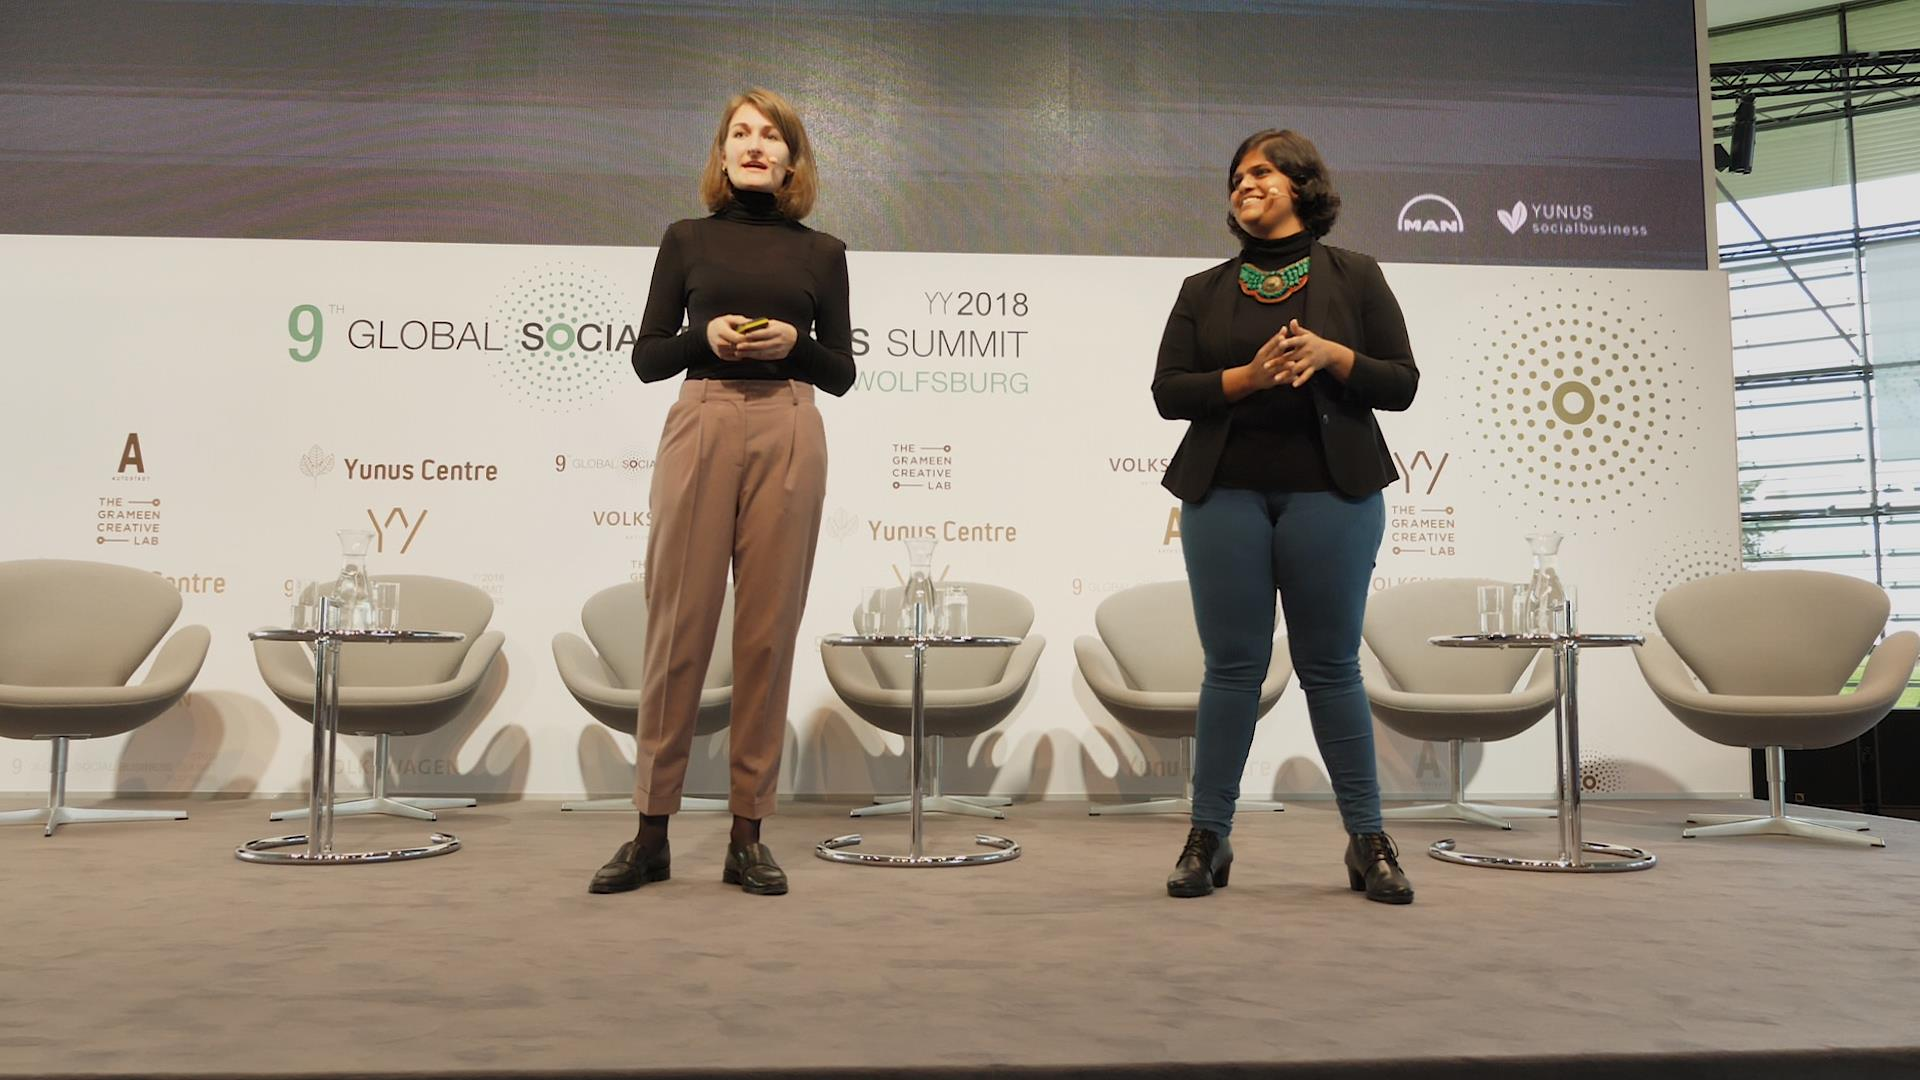 Lisa-Katharina Guggenmos and Arunima Singh (YSB Accelerator lead), introducing the program at the Global Social Business Summit in Wolfsburg, Germany